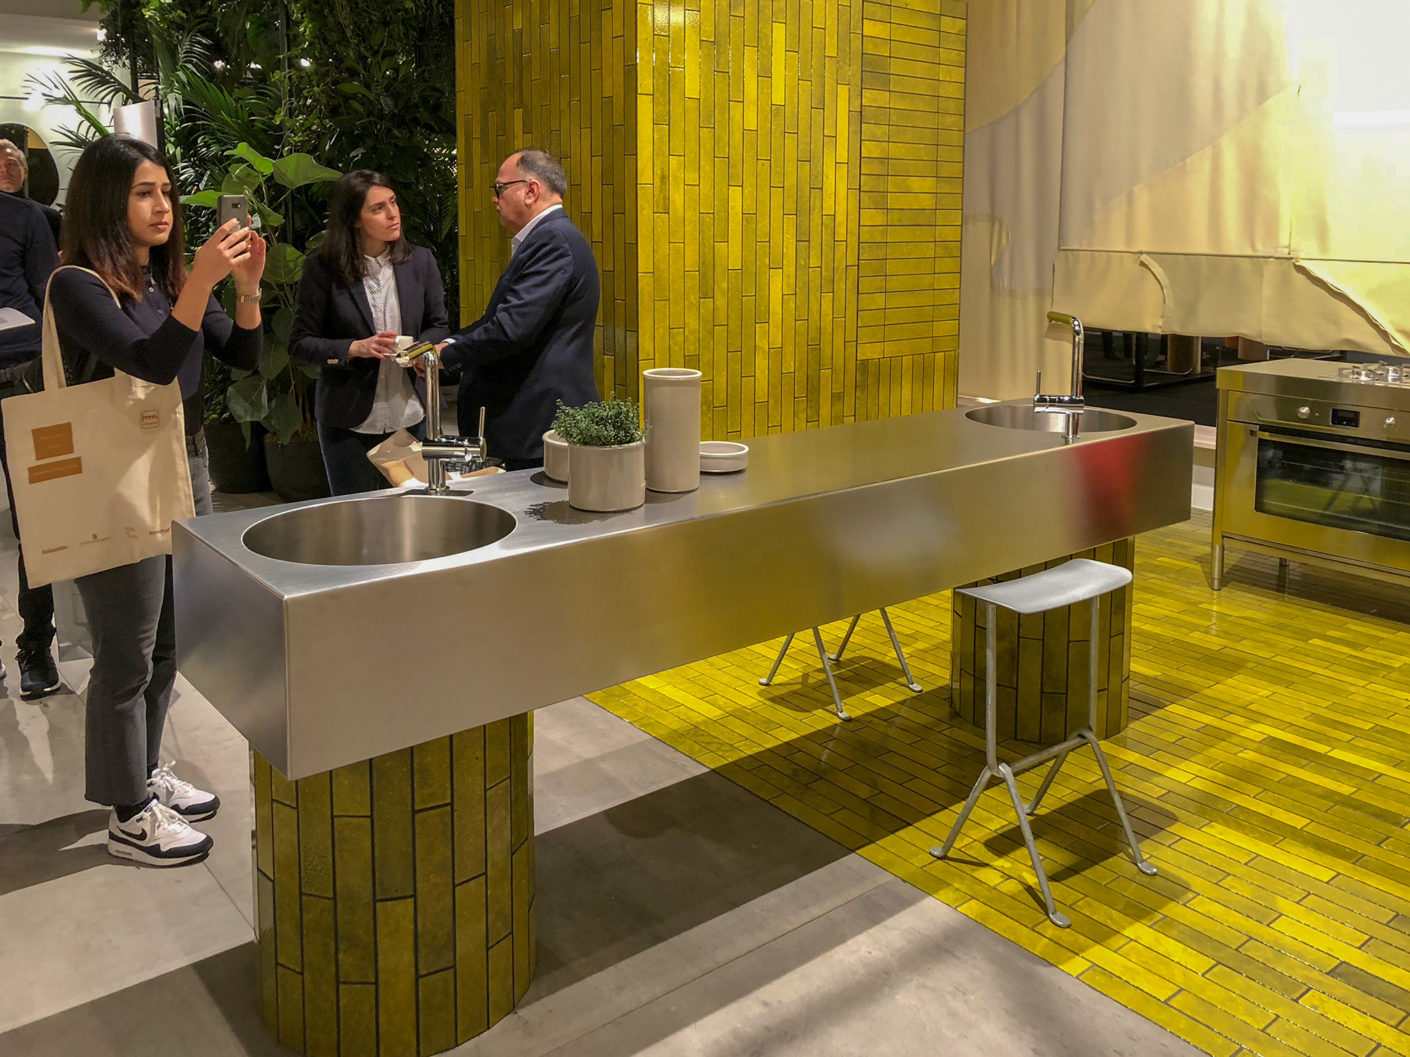 """In their """"house"""" at the imm cologne, Kate and Joel Booy designed the kitchen with elements from Alpes Knox and an armature from Grohe as the centre of a large all-encompassing space."""